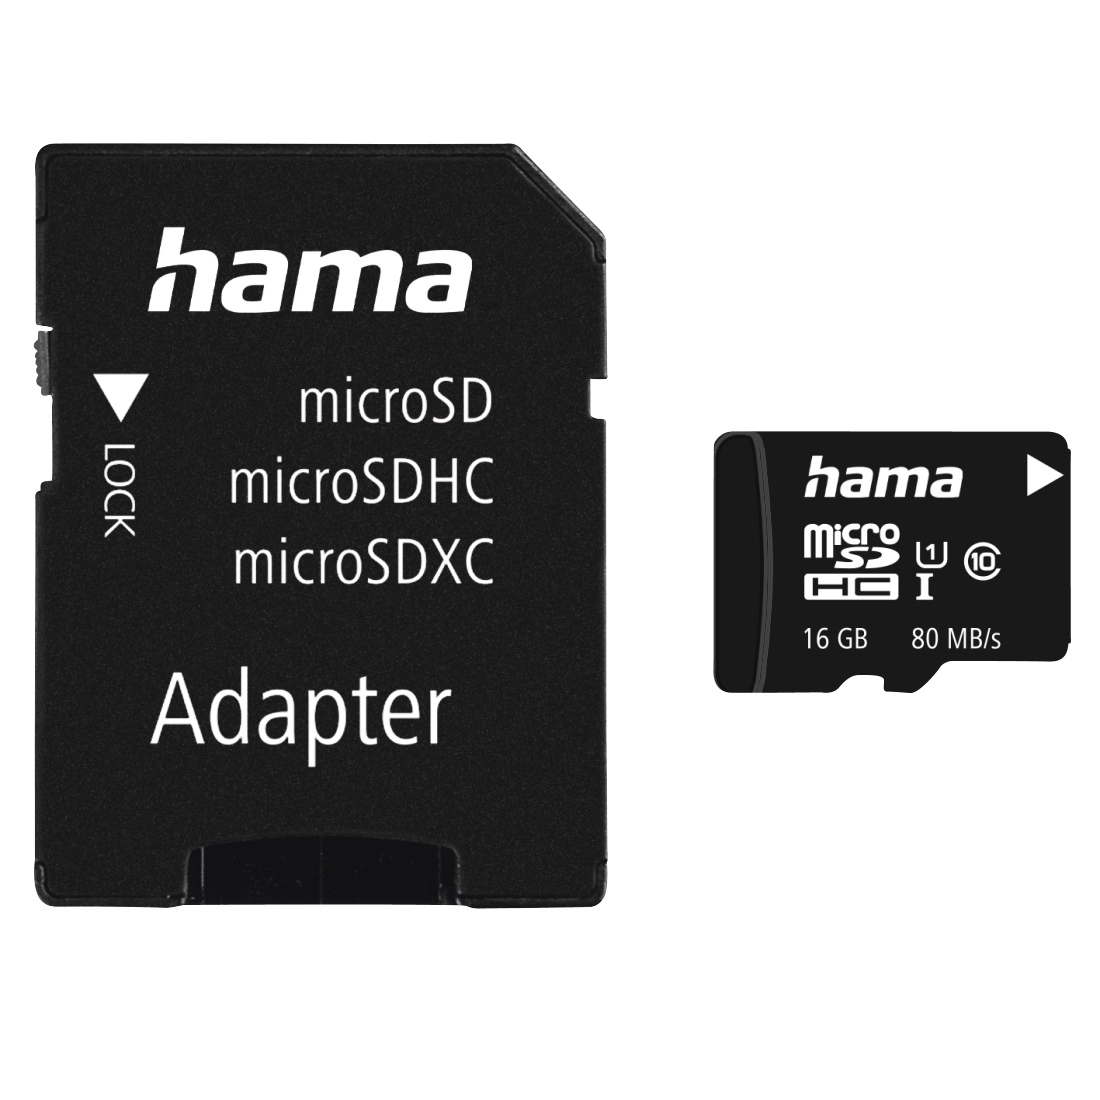 abx High-Res Image - Hama, microSDHC 16GB Class 10 UHS-I 80MB/s + Adapter/Mobile